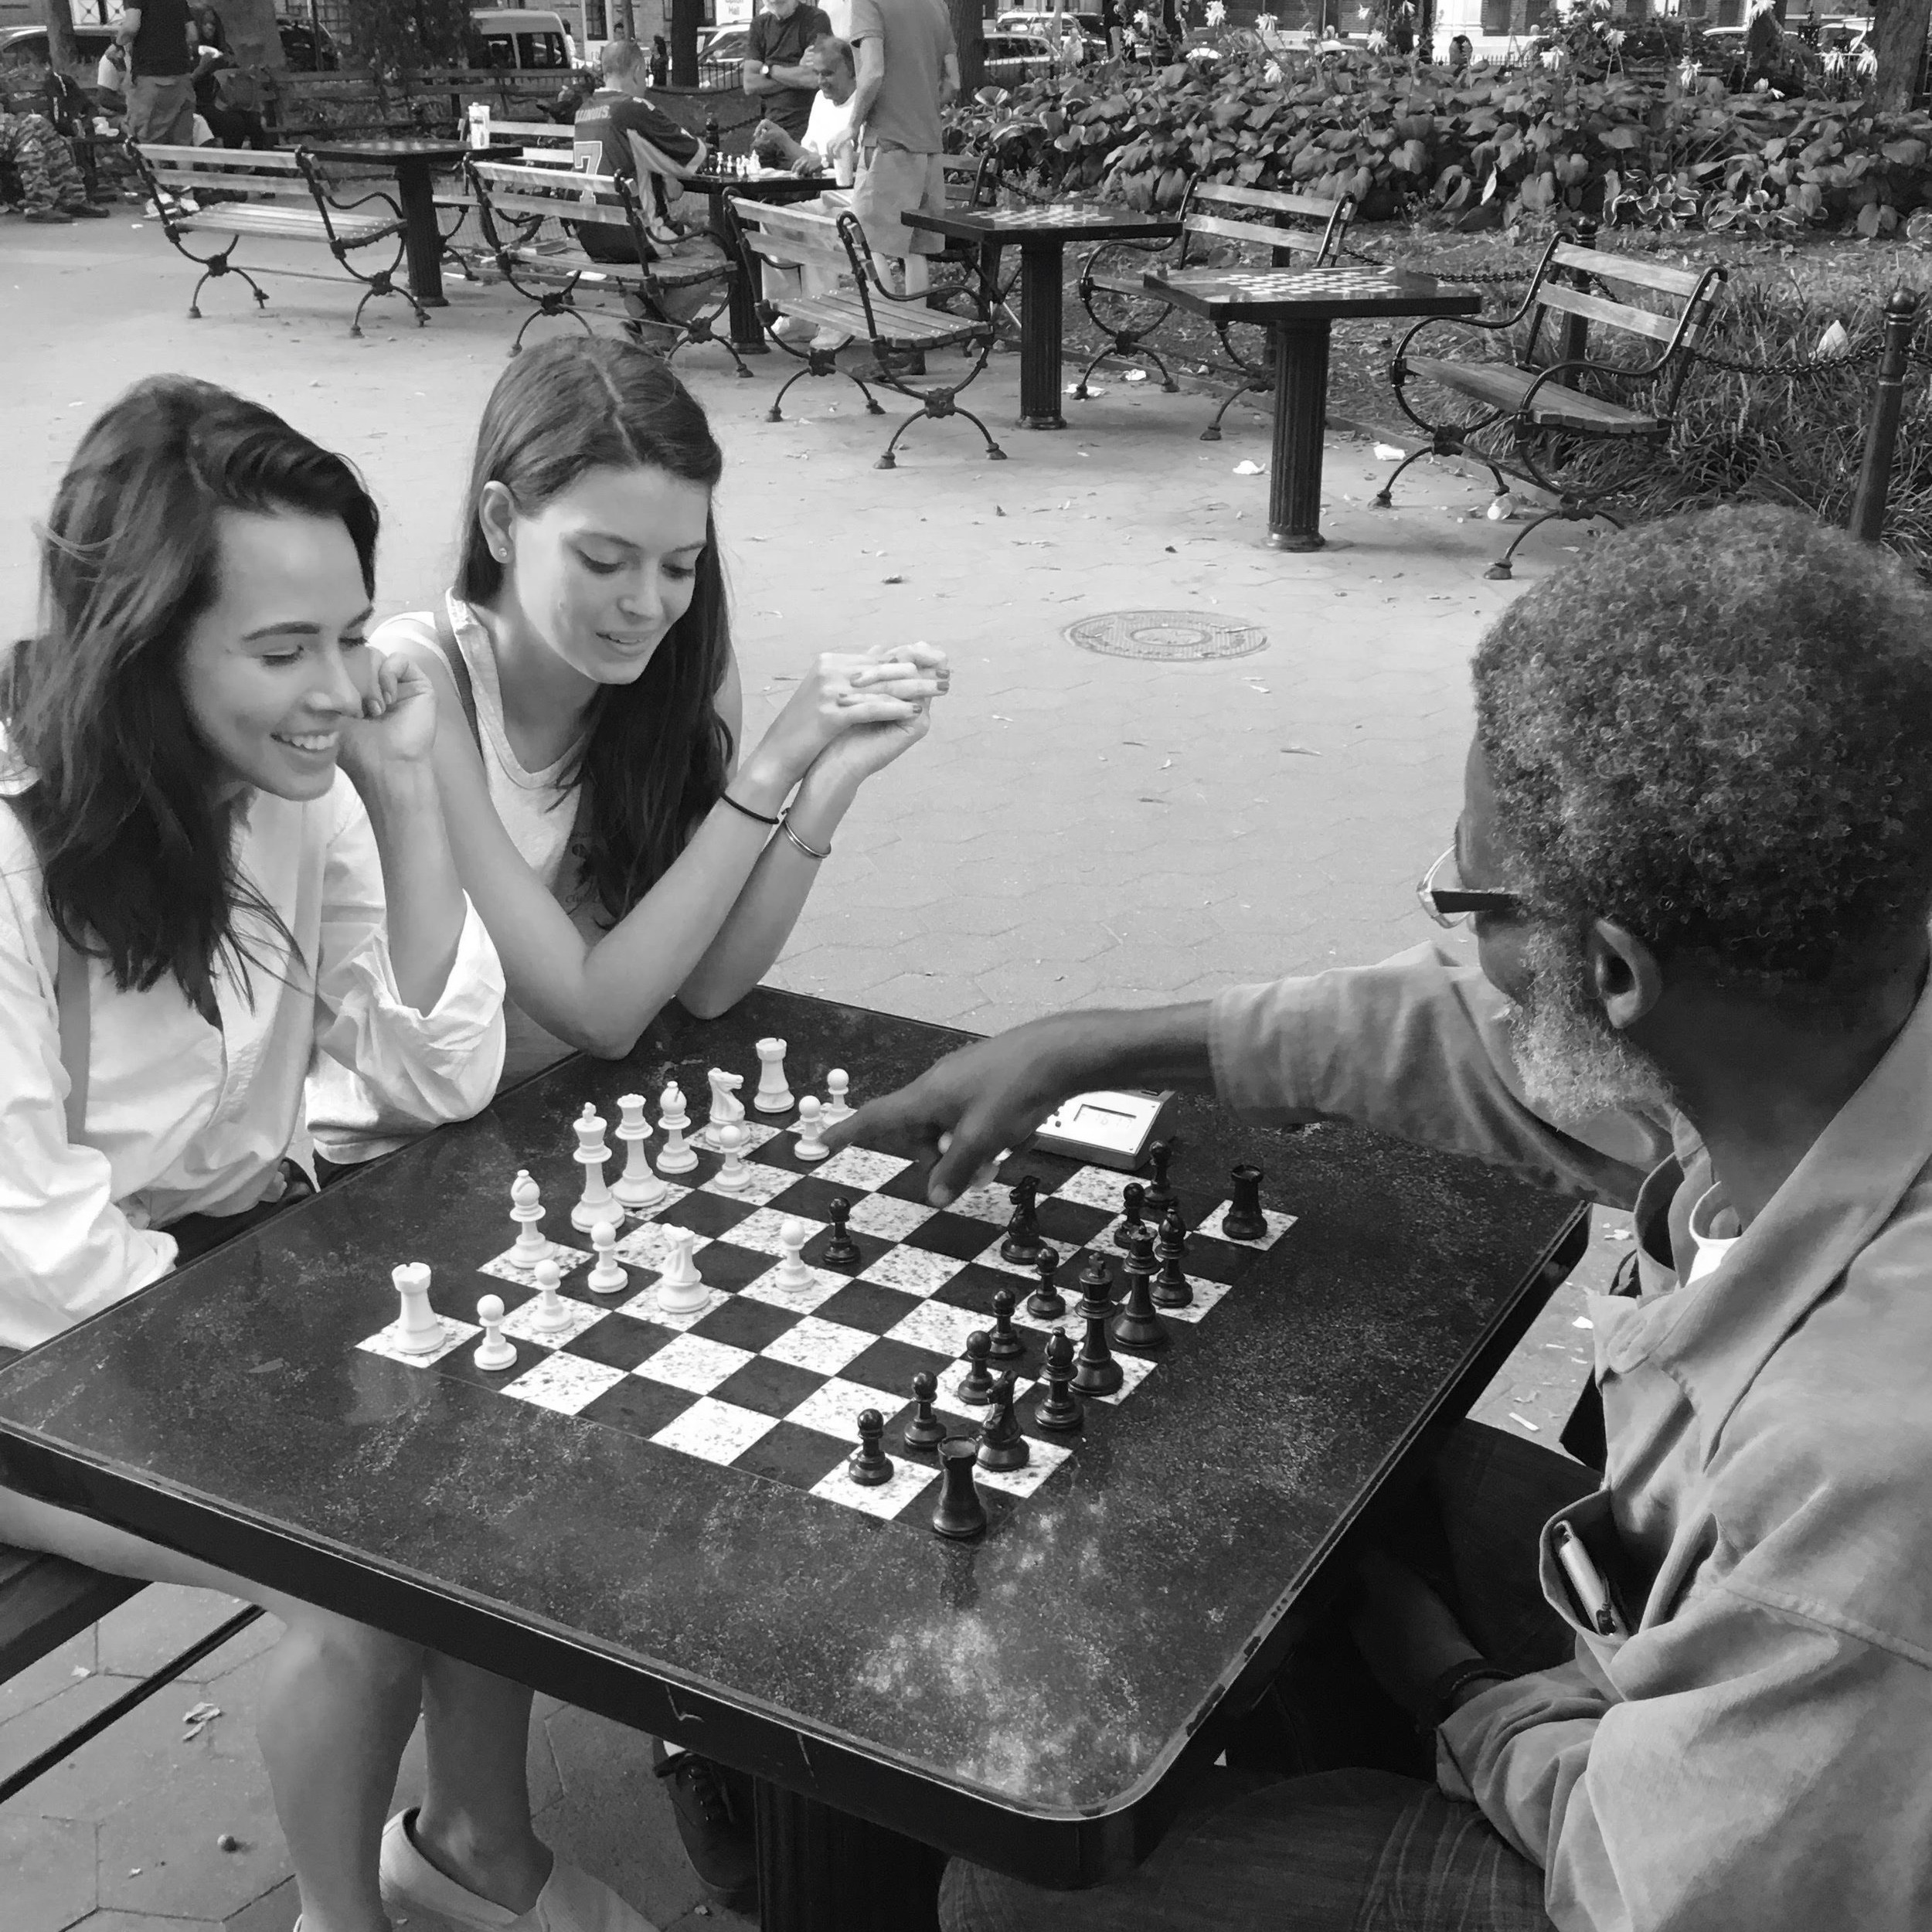 Our History - In 1997 and at the age of six, Nicole Maffeo and Karsten McVay played their first chess match together. They went on to compete against one another for over a decade as top nationally ranked players. 20+ years later, Nicole and Karsten reconnected over coffee at Mud Park in the East Village and the idea for this non-profit was born.